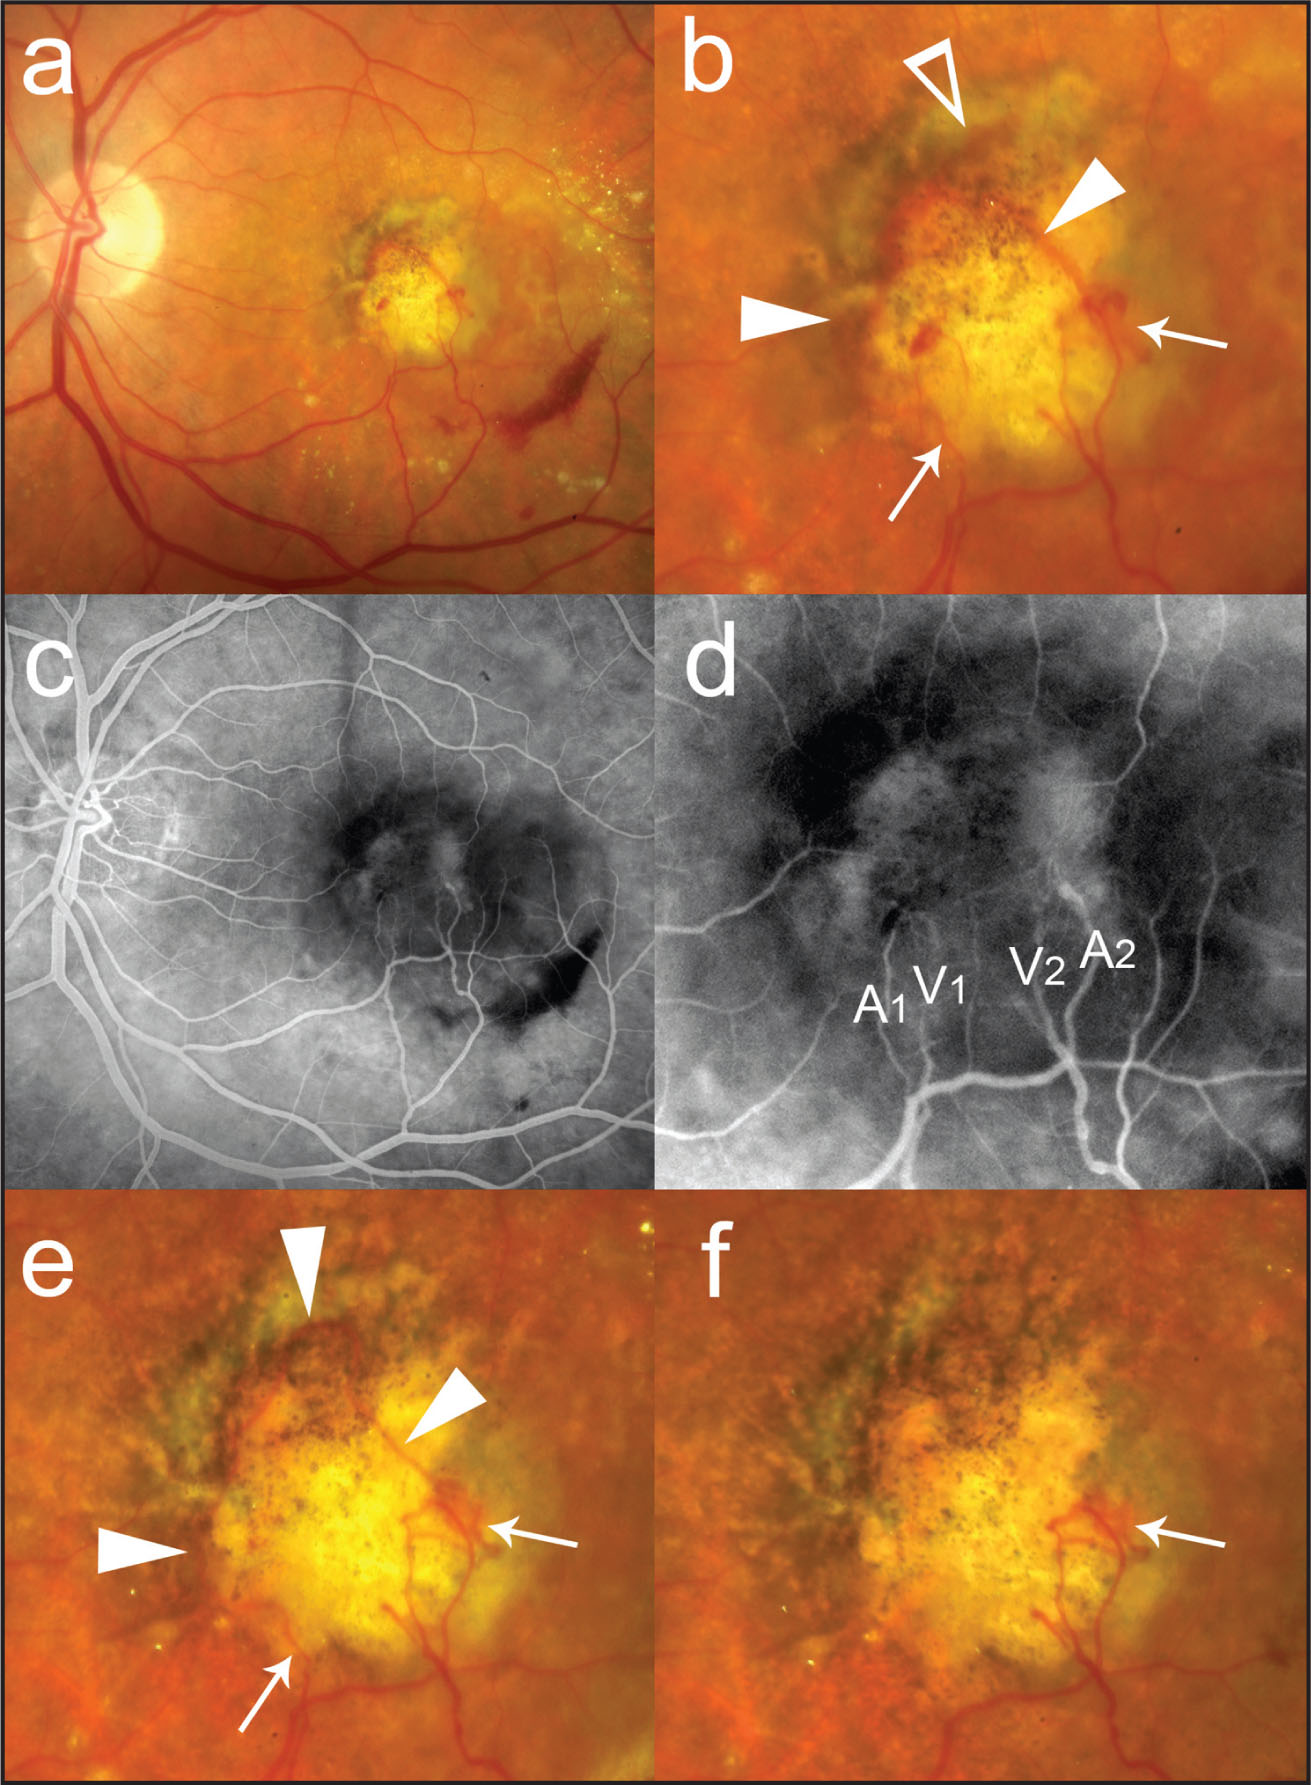 The Left Eye of a 76-Year-Old Woman with Bilateral Exudative Age-Related Macular Degeneration Associated with Retinochoroidal Anastomoses (RAs). (A) Color Fundus Photograph Showing Subfoveal Choroidal Neovascularization (CNV), Subretinal Fluid, Inferotemporal Subretinal Hemorrhage, and Lipid Exudates. Visual Acuity (VA) was 20/200. (B) The Magnified Color Fundus Photograph of Figure A Demonstrated a Large-Size Vessel (open Arrowhead) that Originated from the Grayish, Active CNV Component Superiorly Adjacent to the Subfoveal Fibrotic Scar. The Bifurcation (solid Arrowheads) of the Large-Size Vessel was Seen on the Surface of the Fibrotic Scar, Connecting to Two Separate Sites of RA (arrows). (C) Fluorescein Angiogram Showed Mild Staining of the Fibrotic Component of the CNV. (D) The Magnified Fluorescein Angiogram of Figure C Indicates the Retinal Arterioles (A1, A2) and the Retinal Venules (V1, V2) in the Proximity of the RA. Compared to the Color Fundus Photographs (Figs. A and B), One RA Appears to have a Connection only with the Retinal Venule (V1), Whereas the Other RA Connects with Both the Arteriole (A2) and the Venule (V2). (E) After an Intravitreal Ranibizumab Injection, the Ingrowth Site (Fig. B, Open Arrowhead) of the Presumed Feeder Choroidal Vessel had Regressed and an Unusual Closed Loop-Like Vessel (arrowheads) had Developed. One Arteriole (Fig. D, A1) Became Invisible, but Both RAs Remained (arrows). (F) One Month After an Additional Intravitreal Ranibizumab Injection, the Loop-Like Vessel and One of the Draining Retinal Venules (Fig. D, V1) Disappeared, Leaving One RA Site (arrow) and the Related Anastomotic Arteriole and Venule (Fig. D, A2 and V2). VA was 20/200.